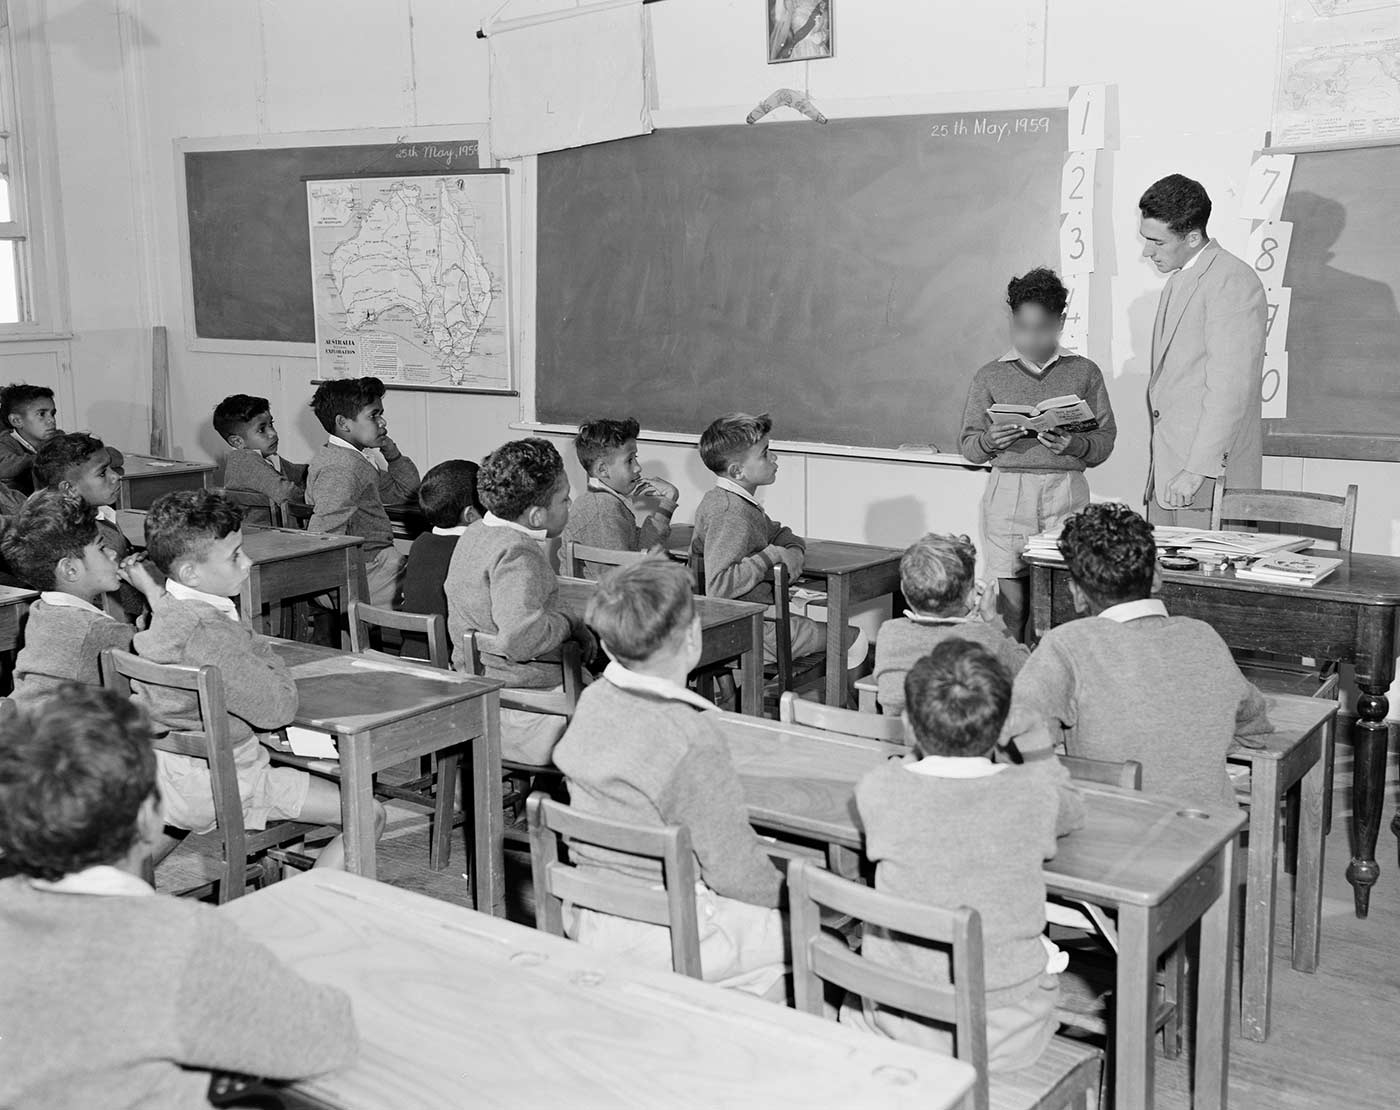 Black and white photo showing young Aboriginal boys in a classroom. One boy stands at the front, reading from a book, with the teacher standing beside him. A map of Australia hangs to the left of a blackboard. A boomerang sits above the blackboard. - click to view larger image